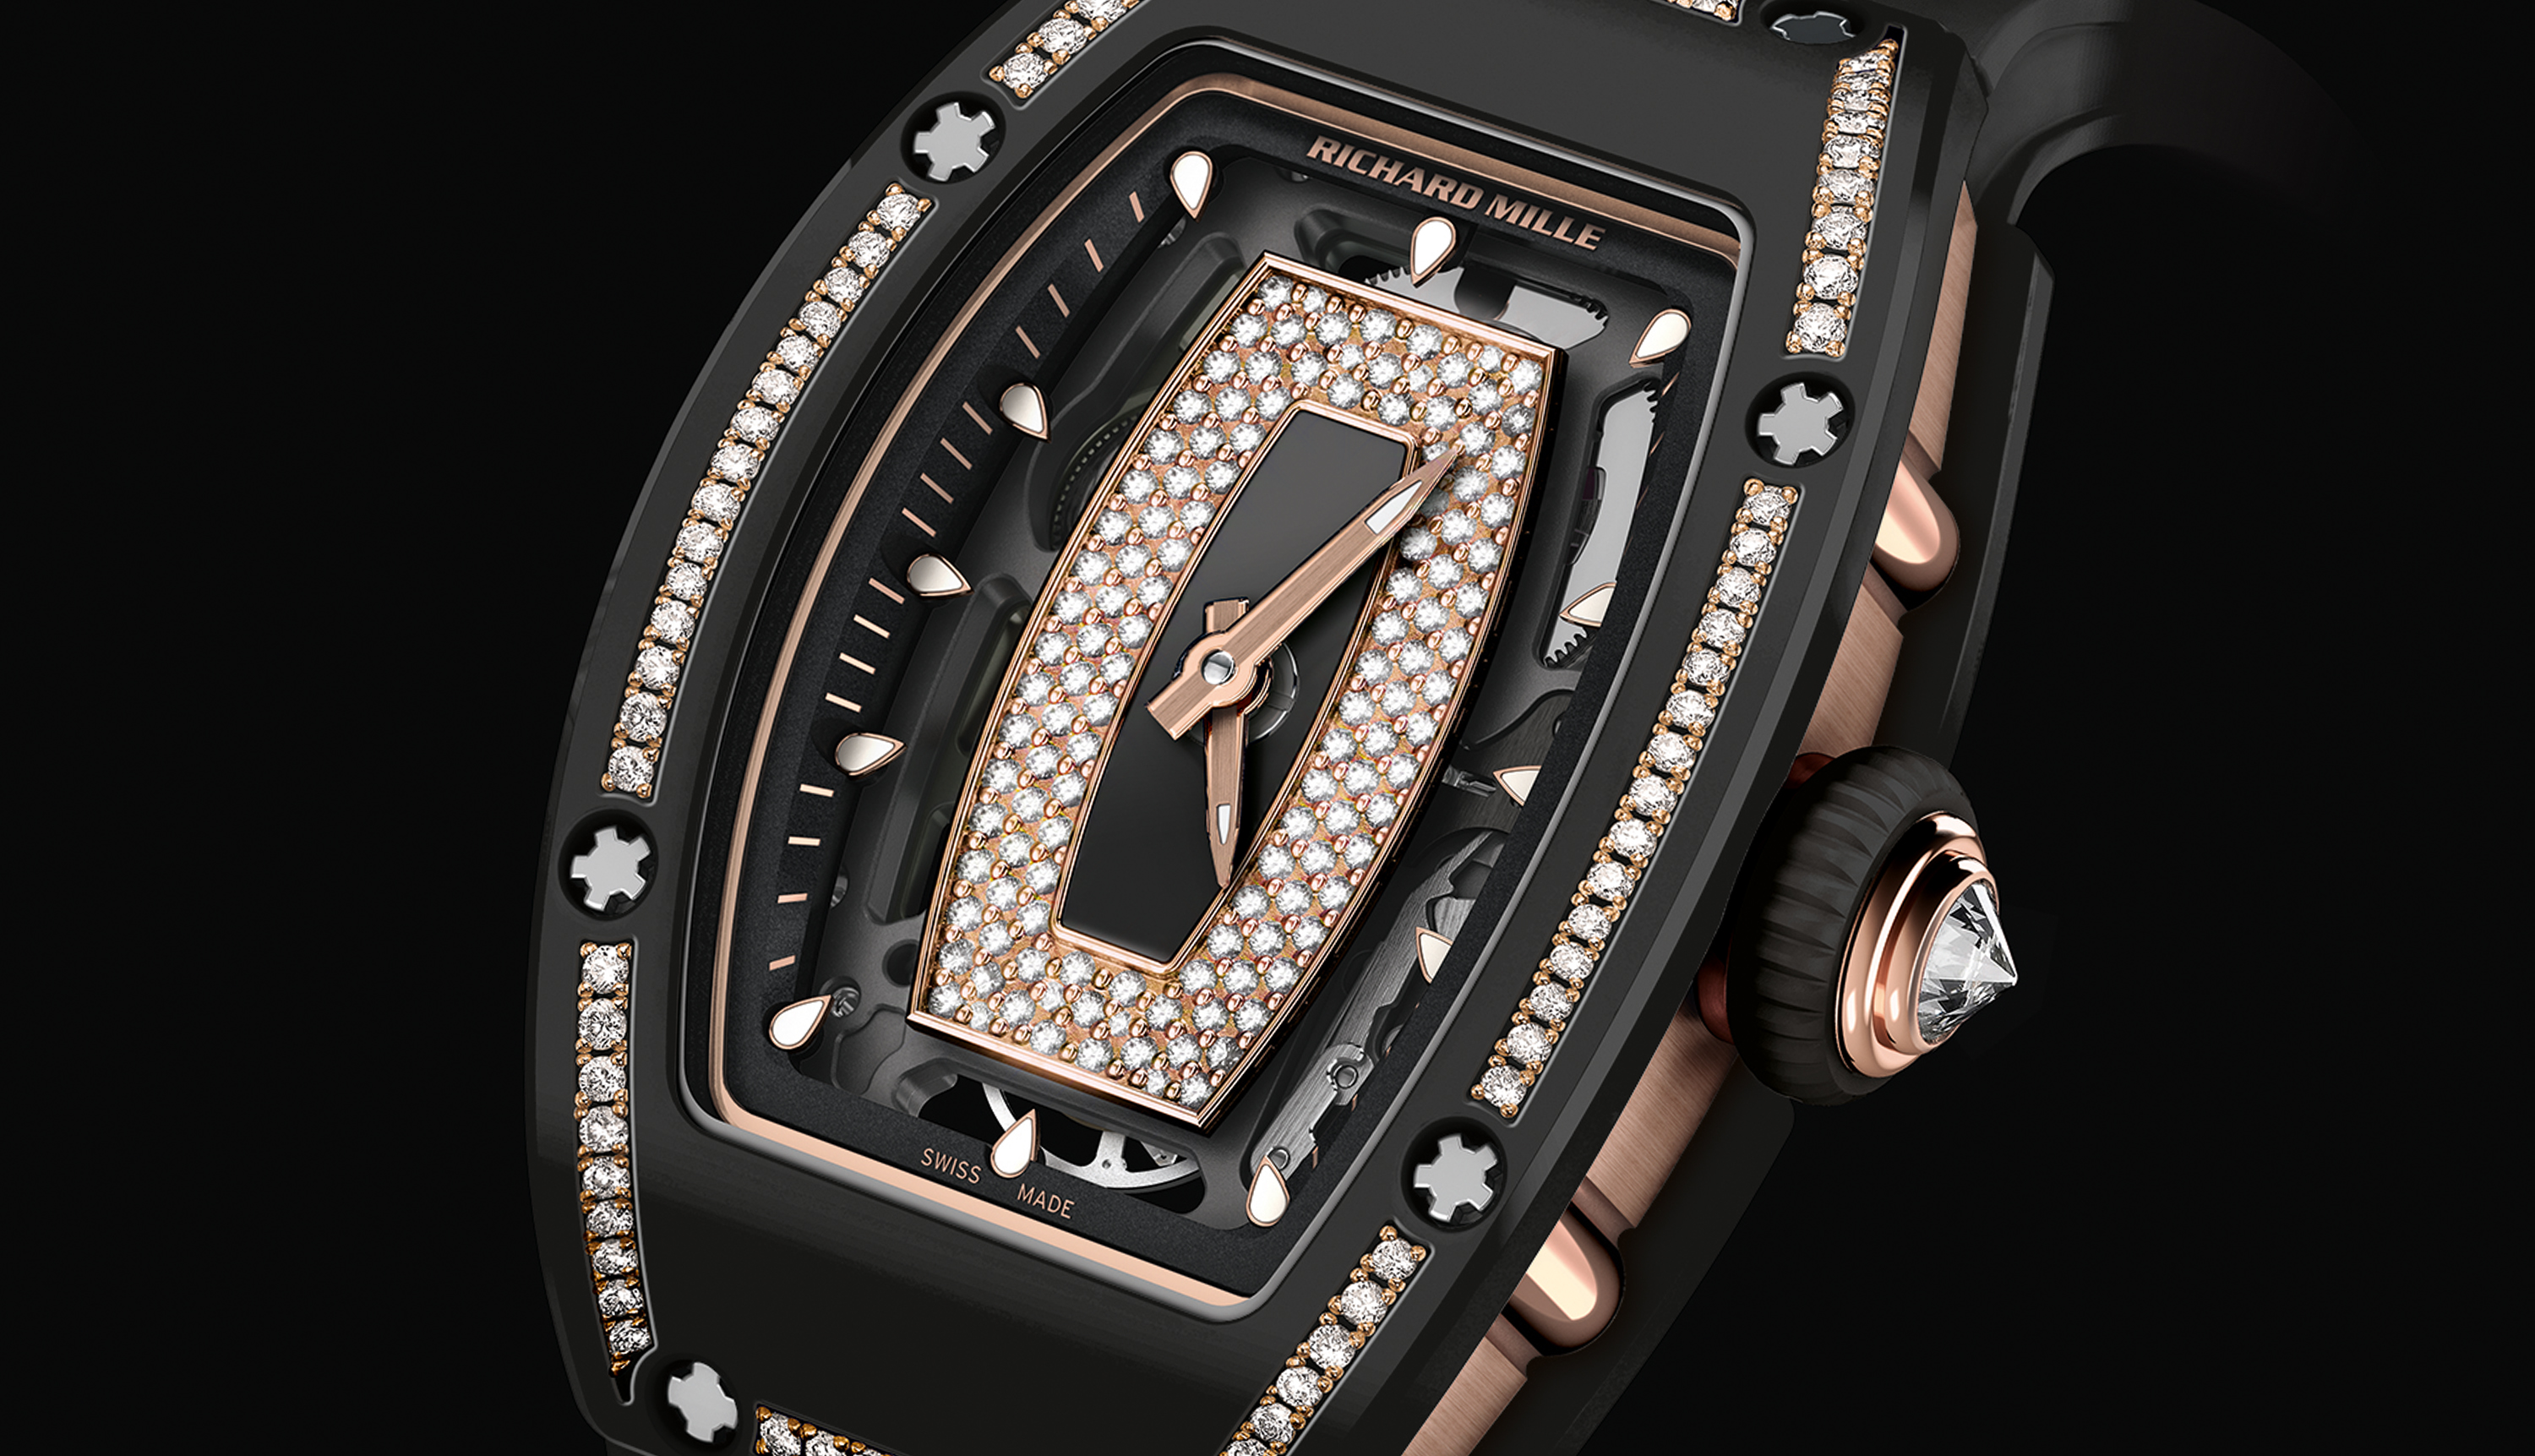 Richard Mille just unveiled a spectacular ladies' timepiece ahead of SIHH 2018